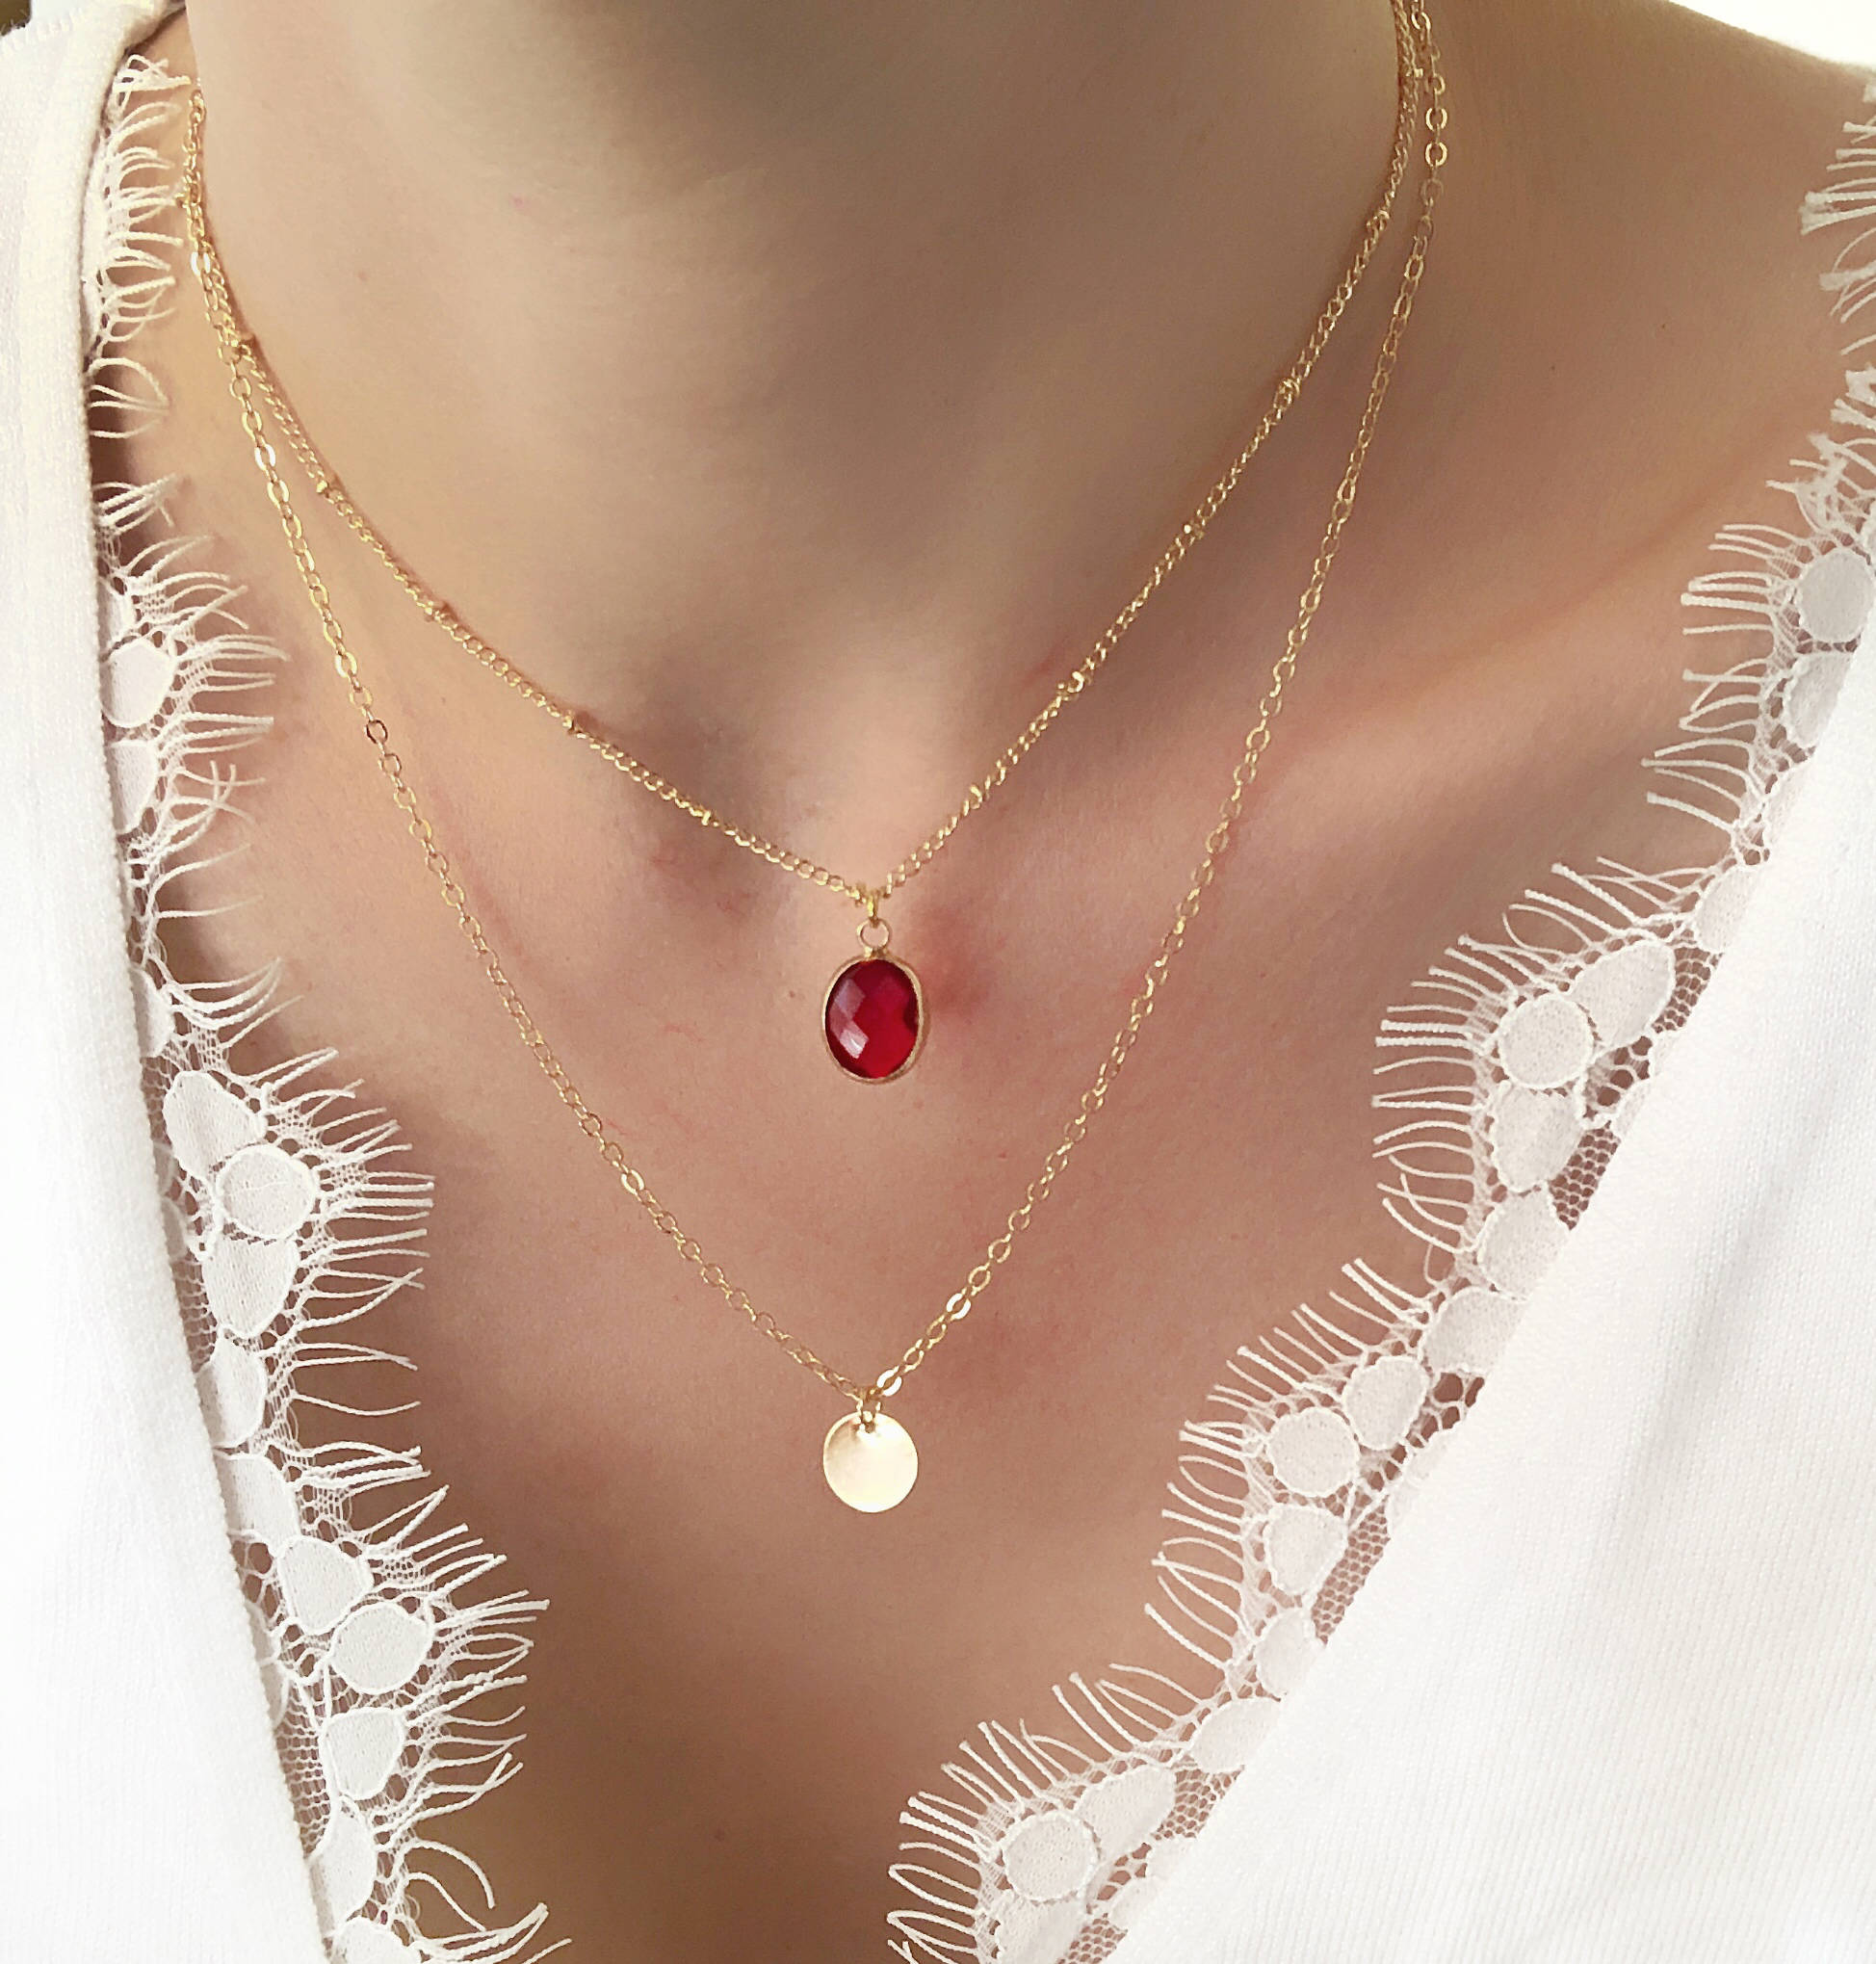 collier or et pierre rouge